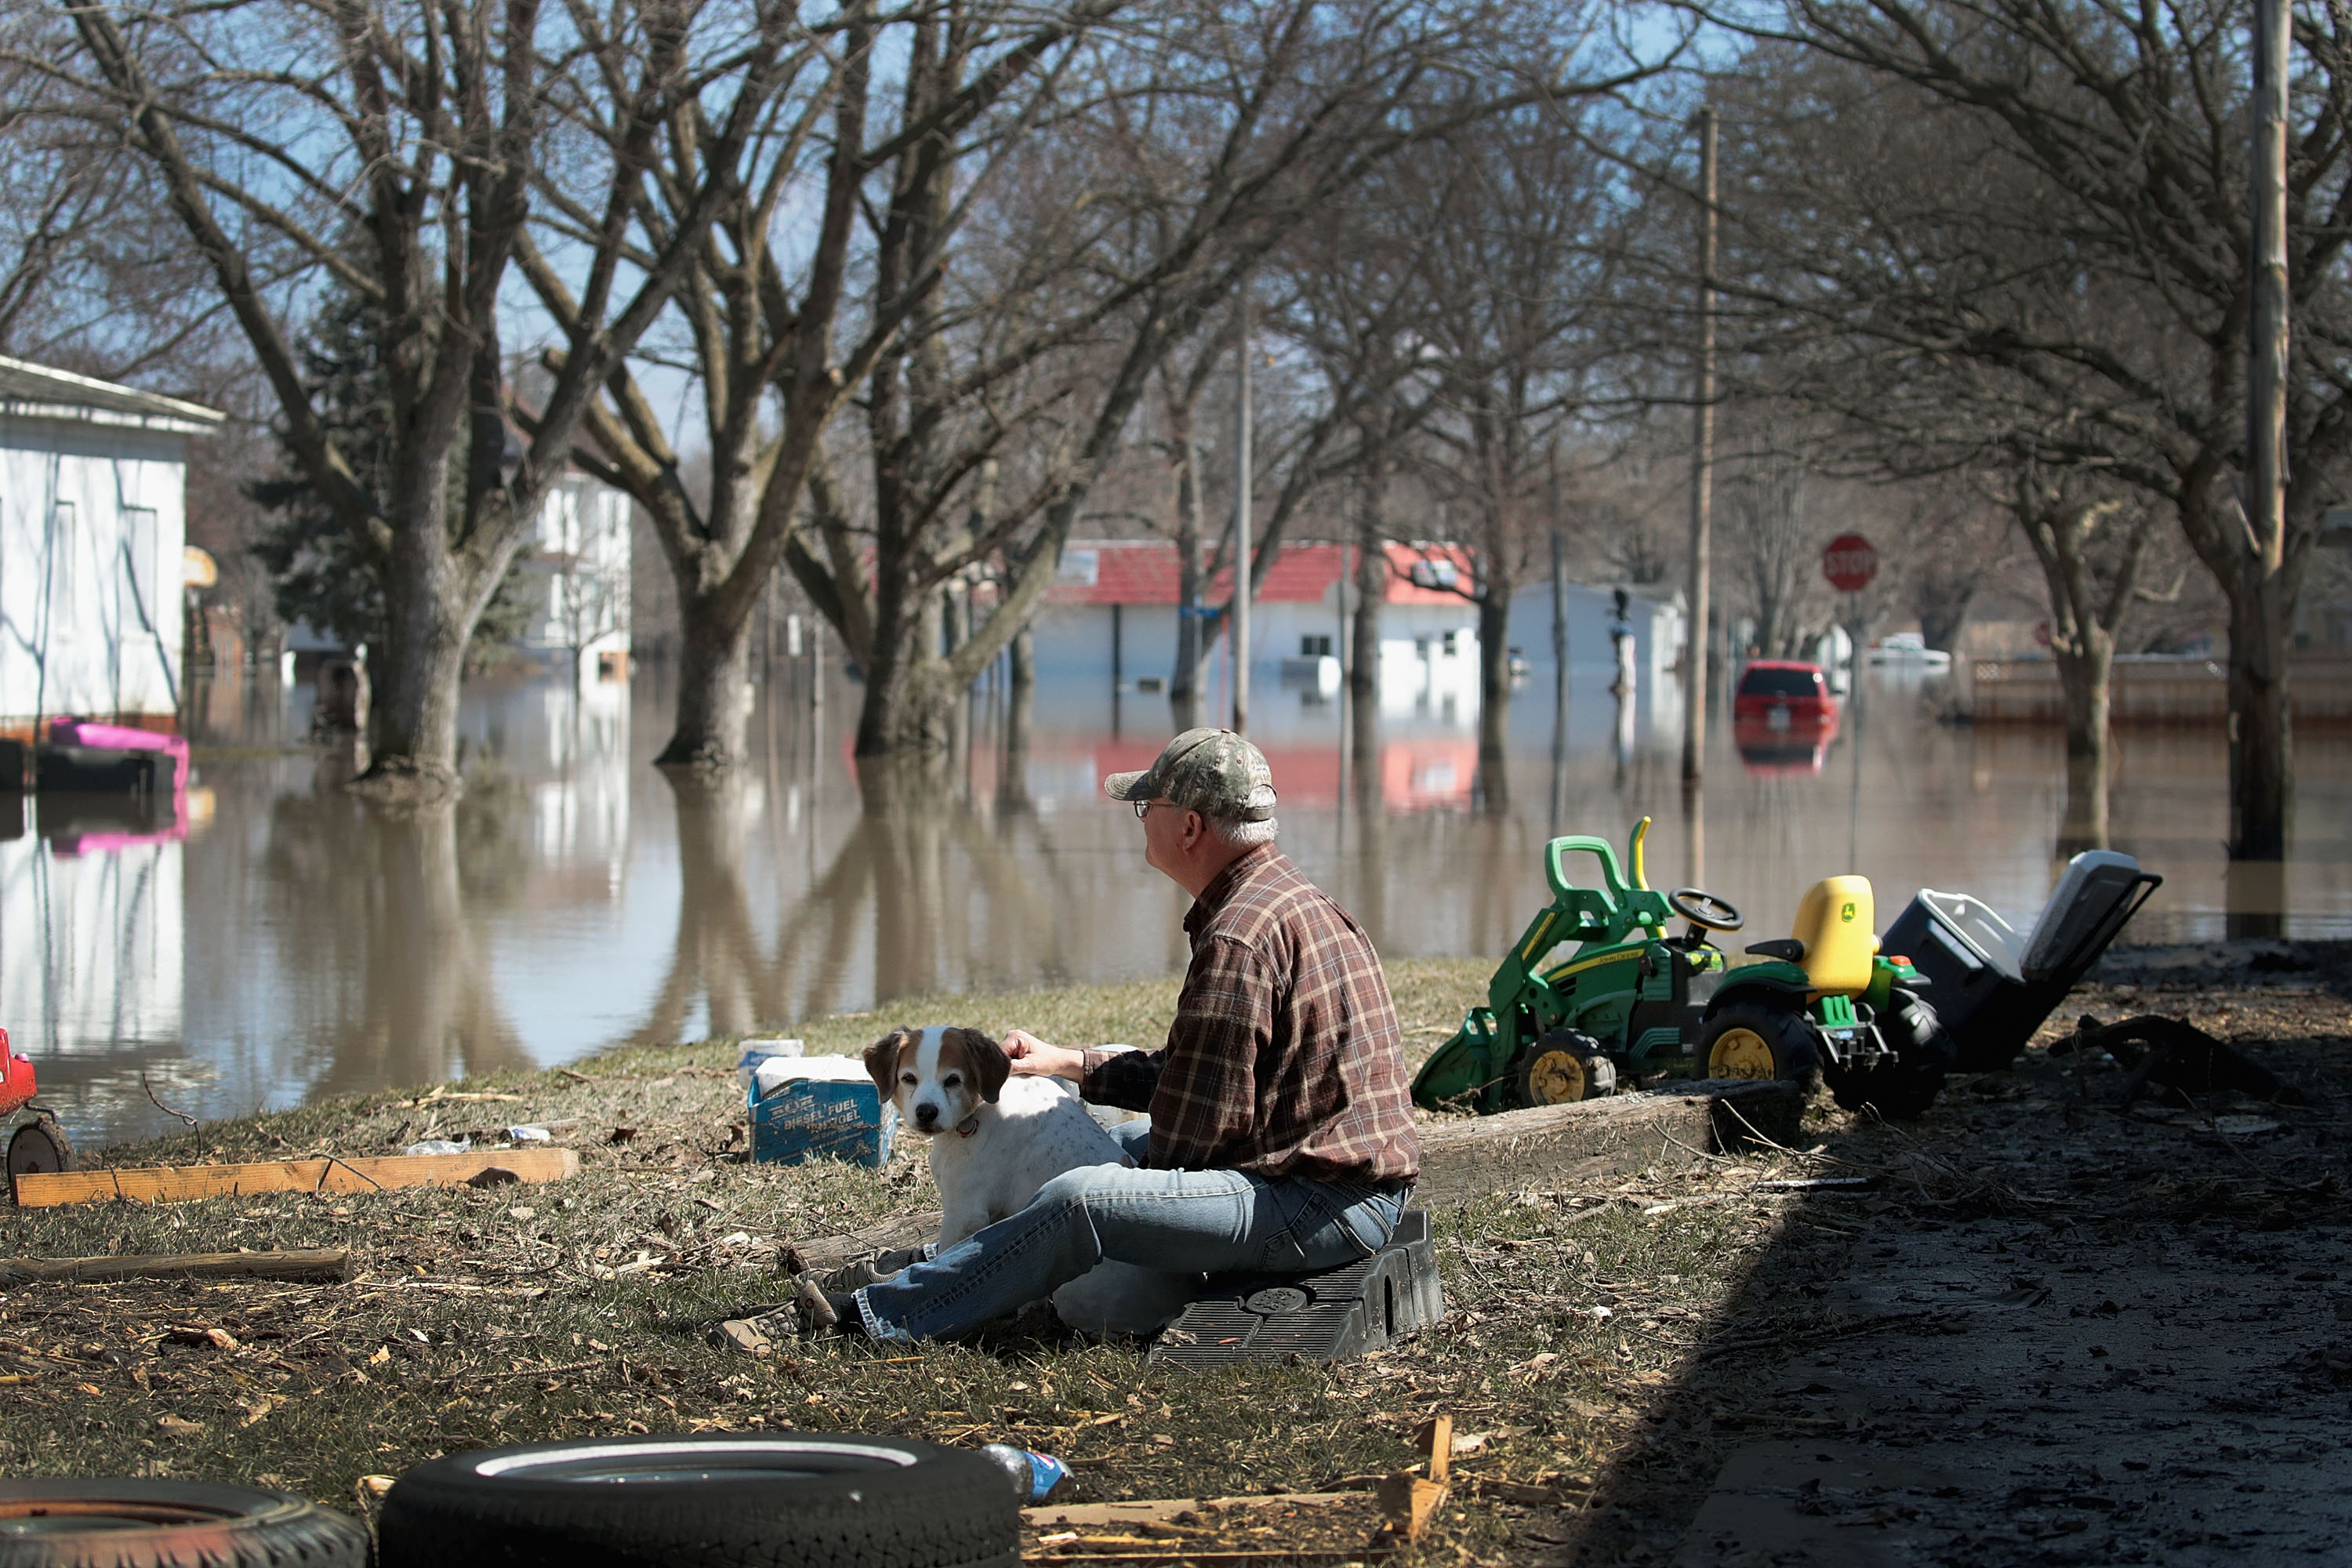 """HAMBURG, IOWA - MARCH 20:  Dave Mincer sits along a flooded street with a friend's dog on March 20, 2019 in Hamburg, Iowa. Although flood water in the town has started to recede many homes and businesses remain surrounded by water. Several Midwest states are battling some of the worst flooding they have experienced in decades as rain and snow melt from the recent """"bomb cyclone"""" has inundated rivers and streams. At least three deaths have been linked to the flooding.  (Photo by Scott Olson/Getty Images)"""